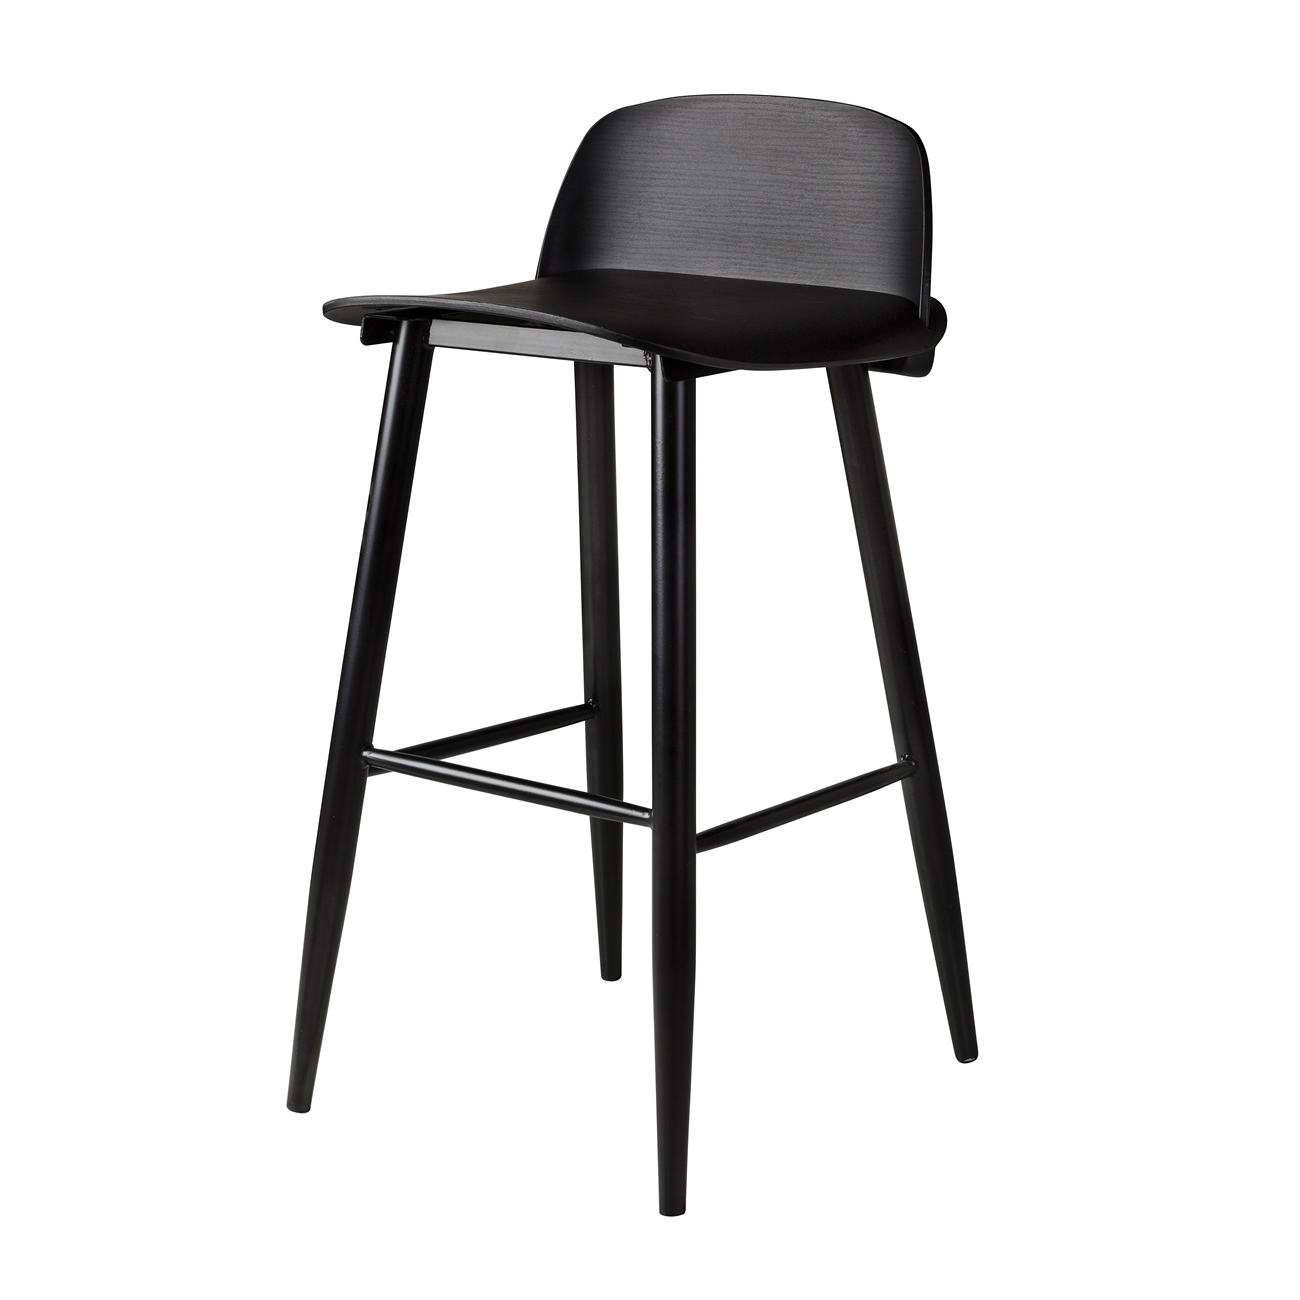 Pleasing Nerd Replica Bar Stool In Black The Khazana Home Austin Furniture Store Pabps2019 Chair Design Images Pabps2019Com